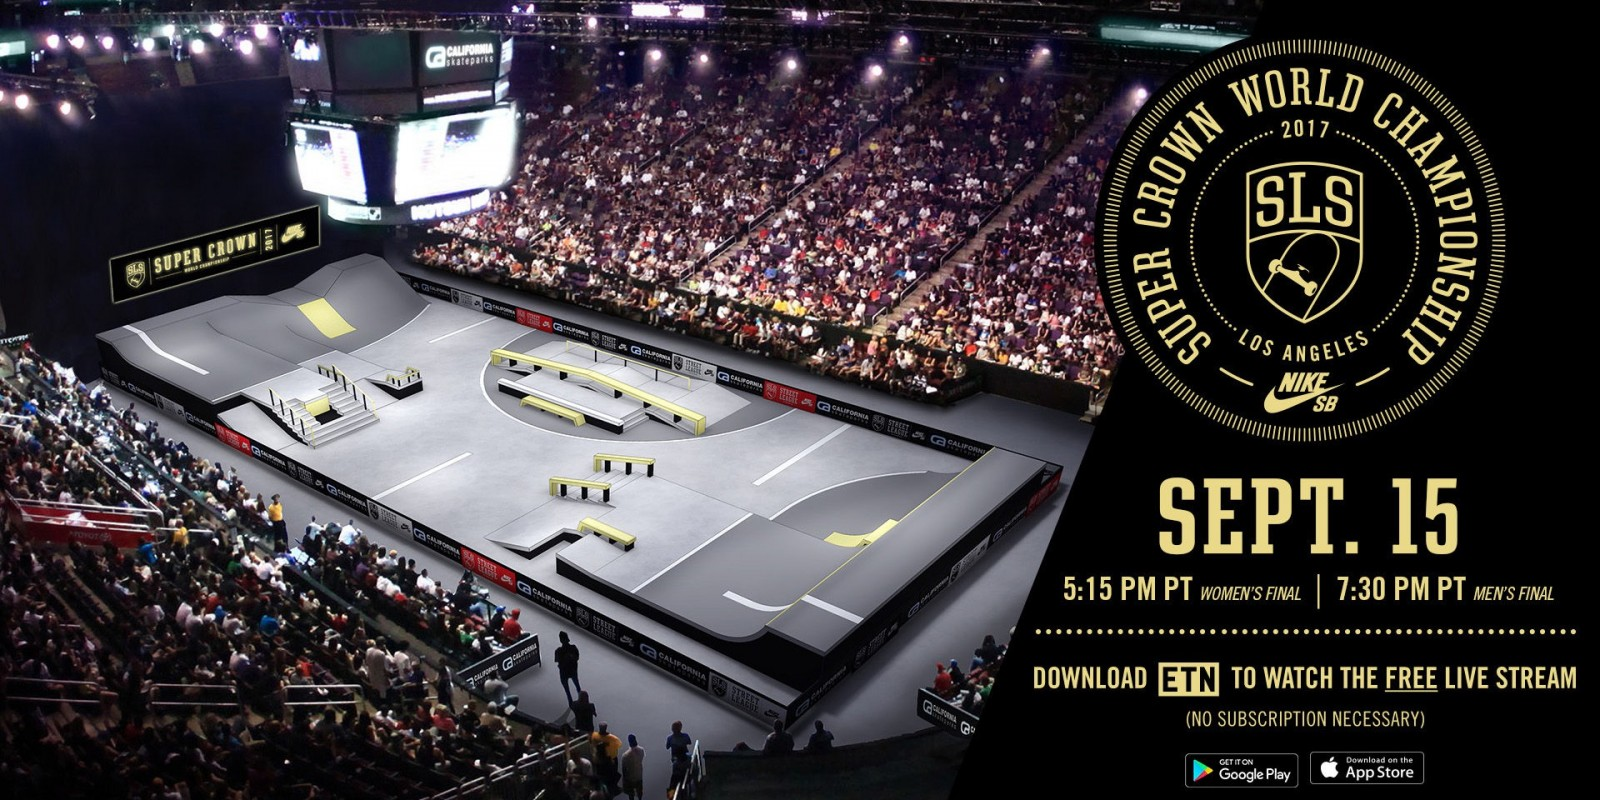 Promotion for the 2017 Street League Series at Los Angeles, CA